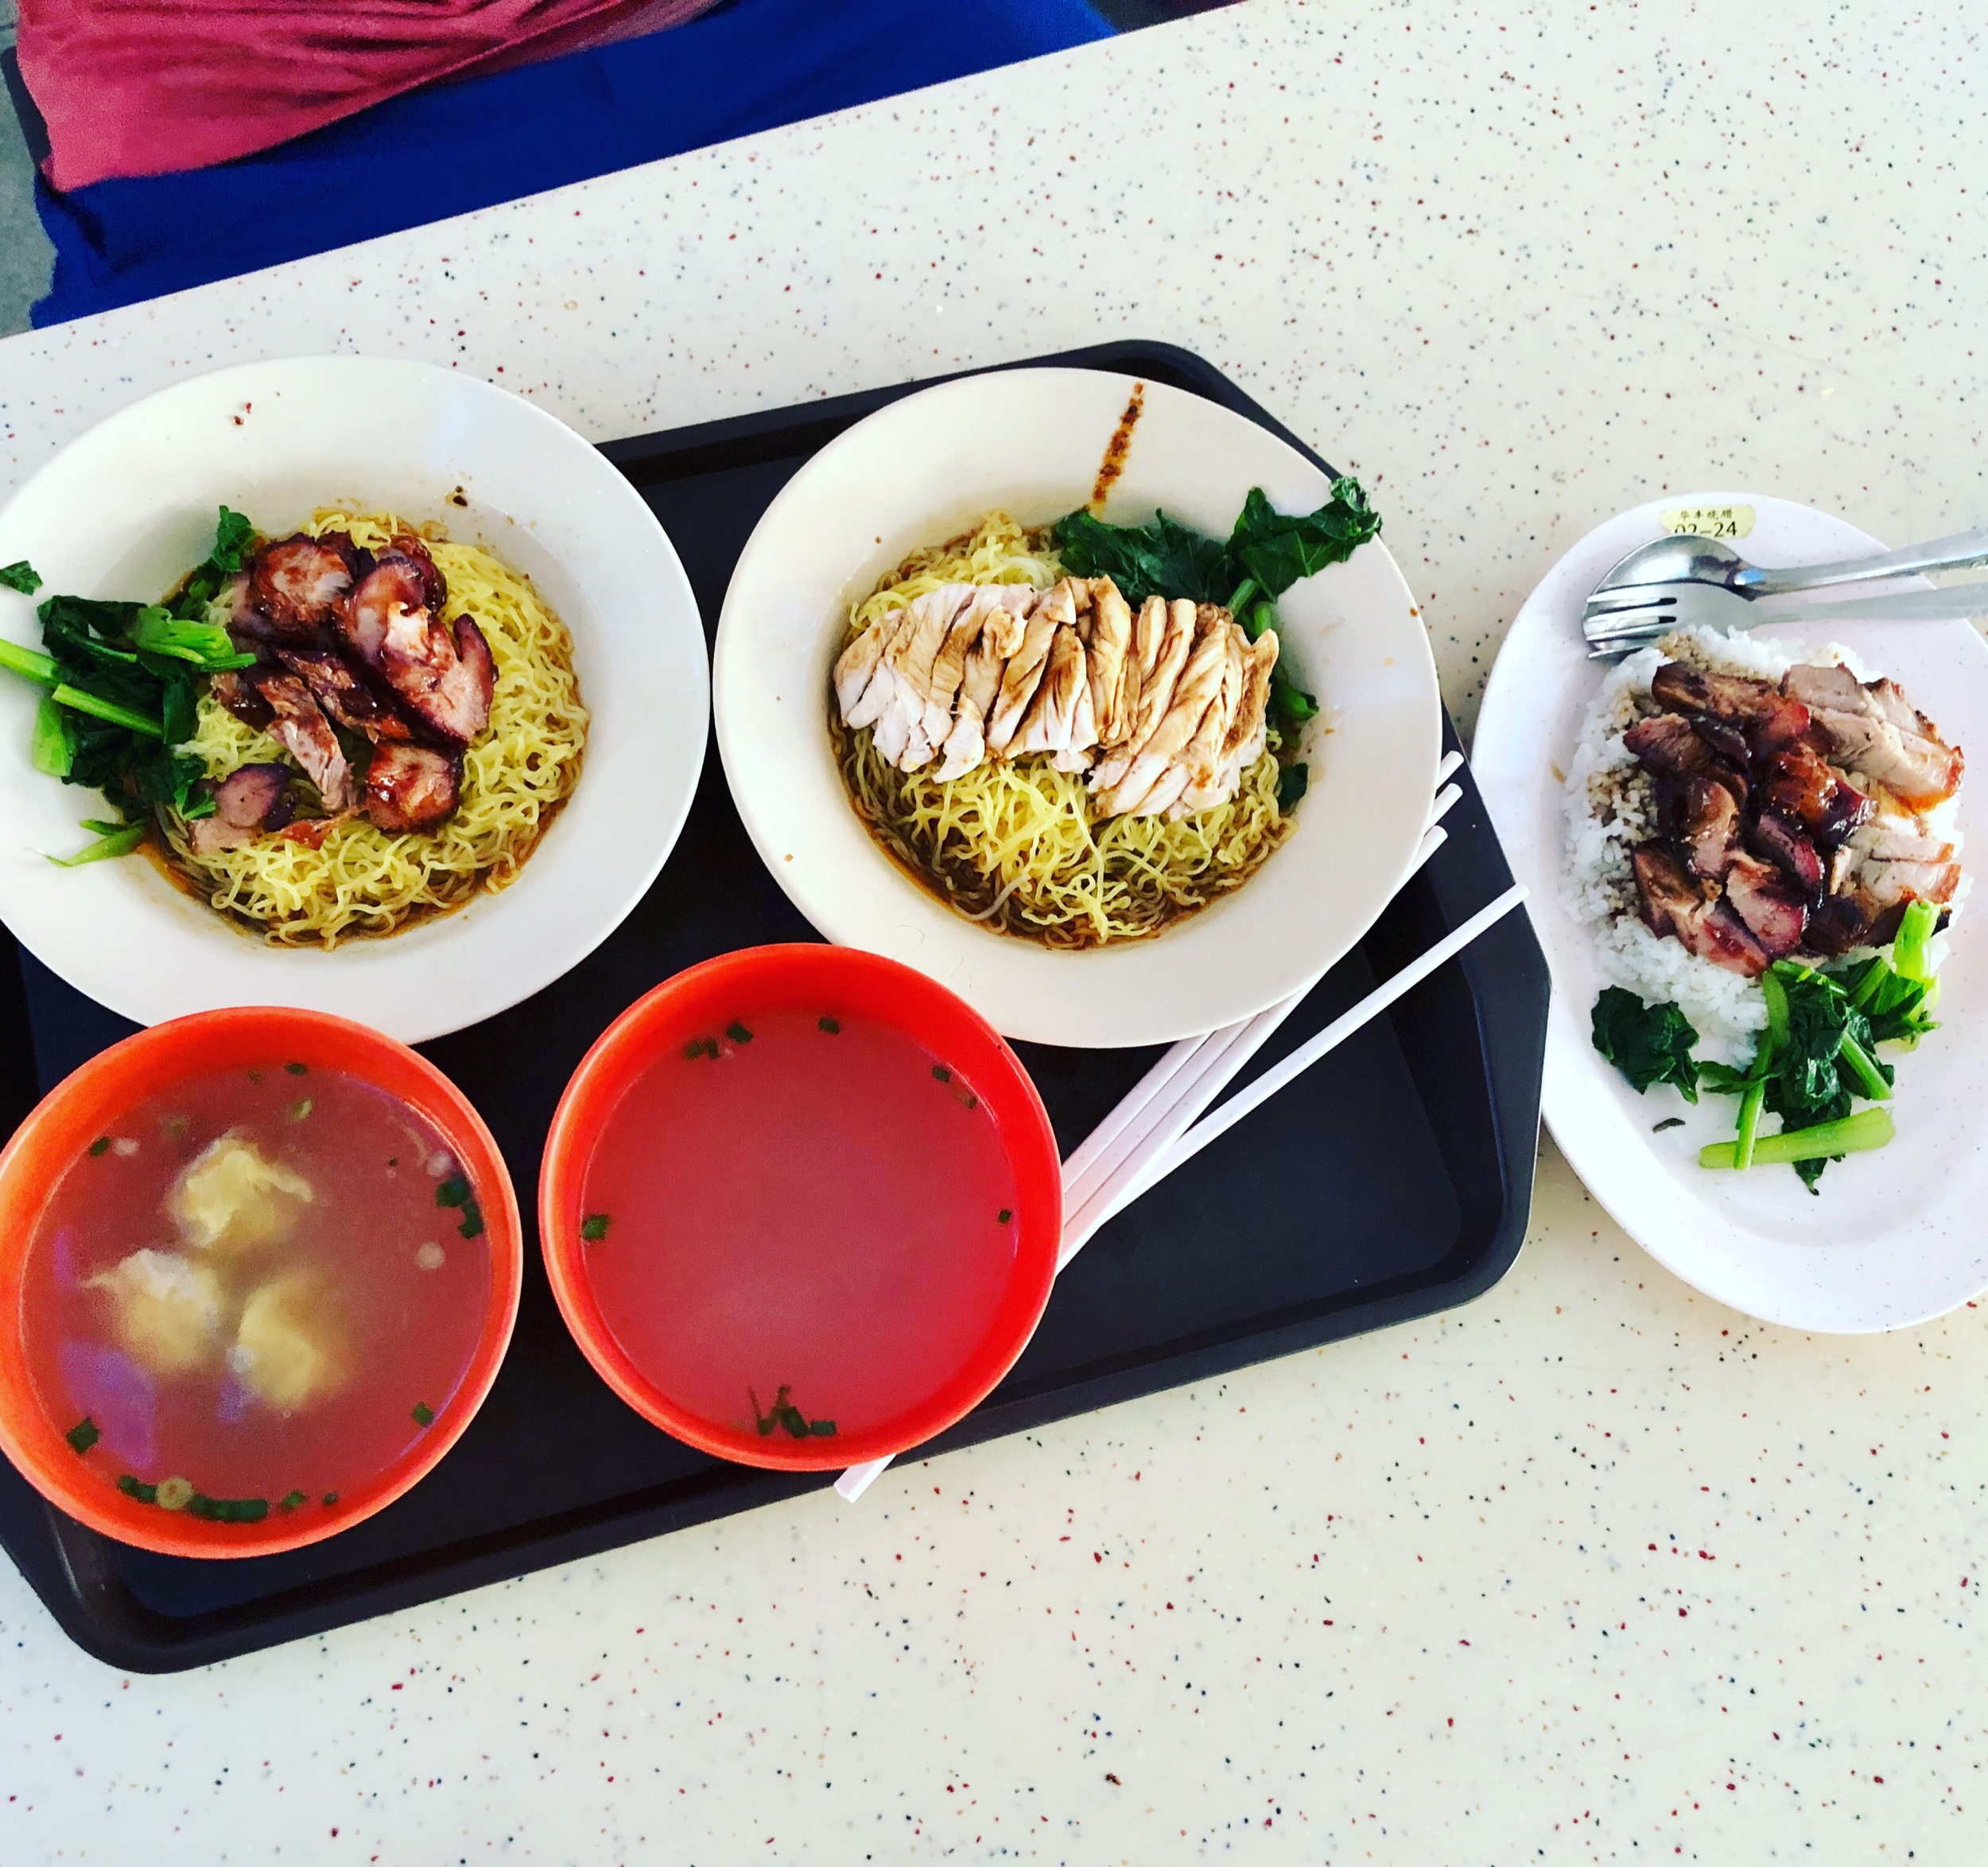 {Tiong Bahru Market} - hawker center, quintessential Singapore food experience and one of my favorites.